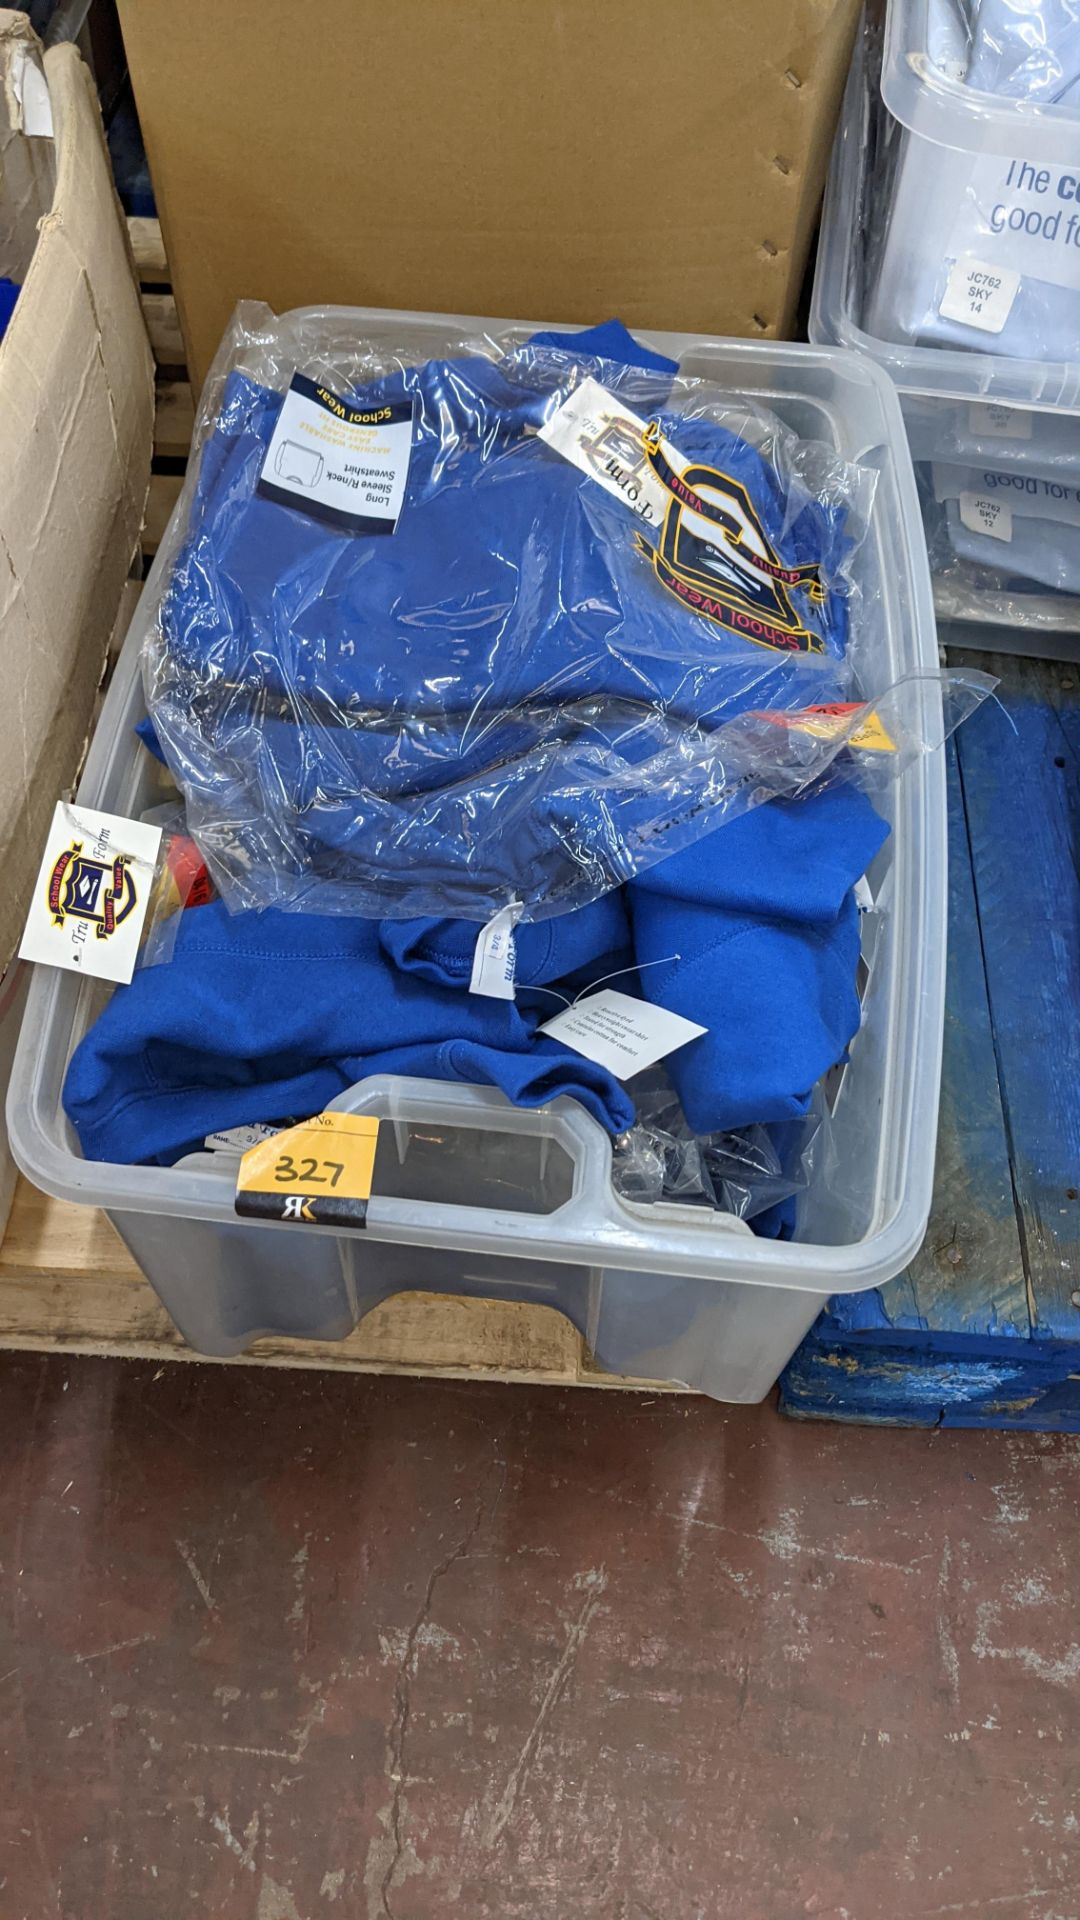 Approx 19 off blue children's sweatshirts - the contents of 1 crate. NB crate excluded